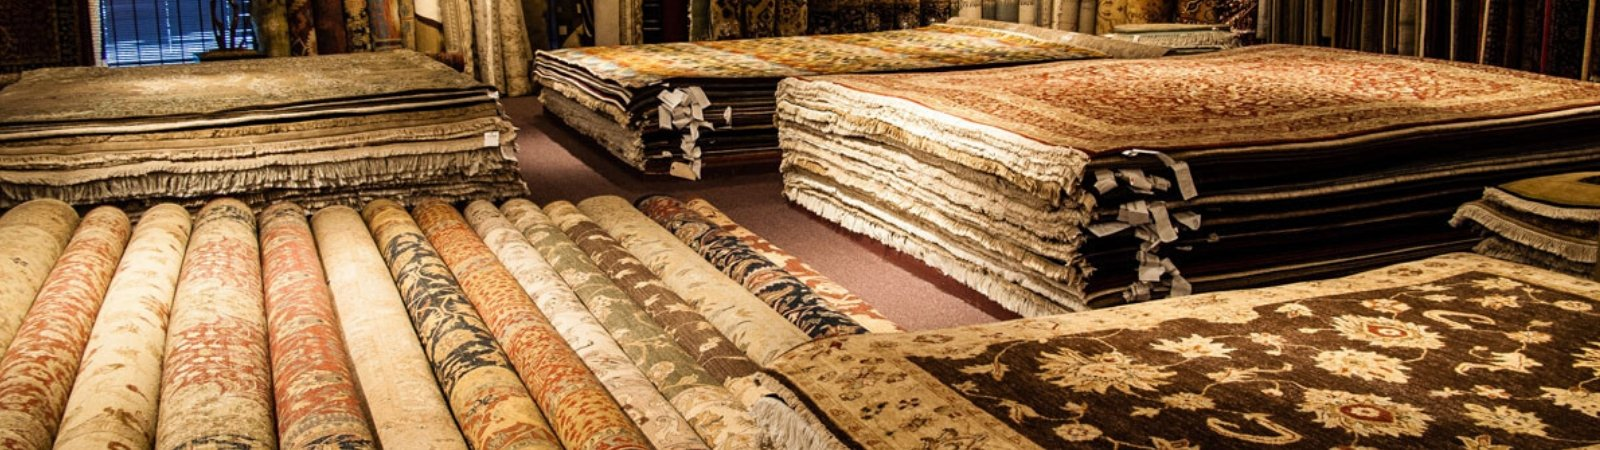 Thousands of Rugs in Stock